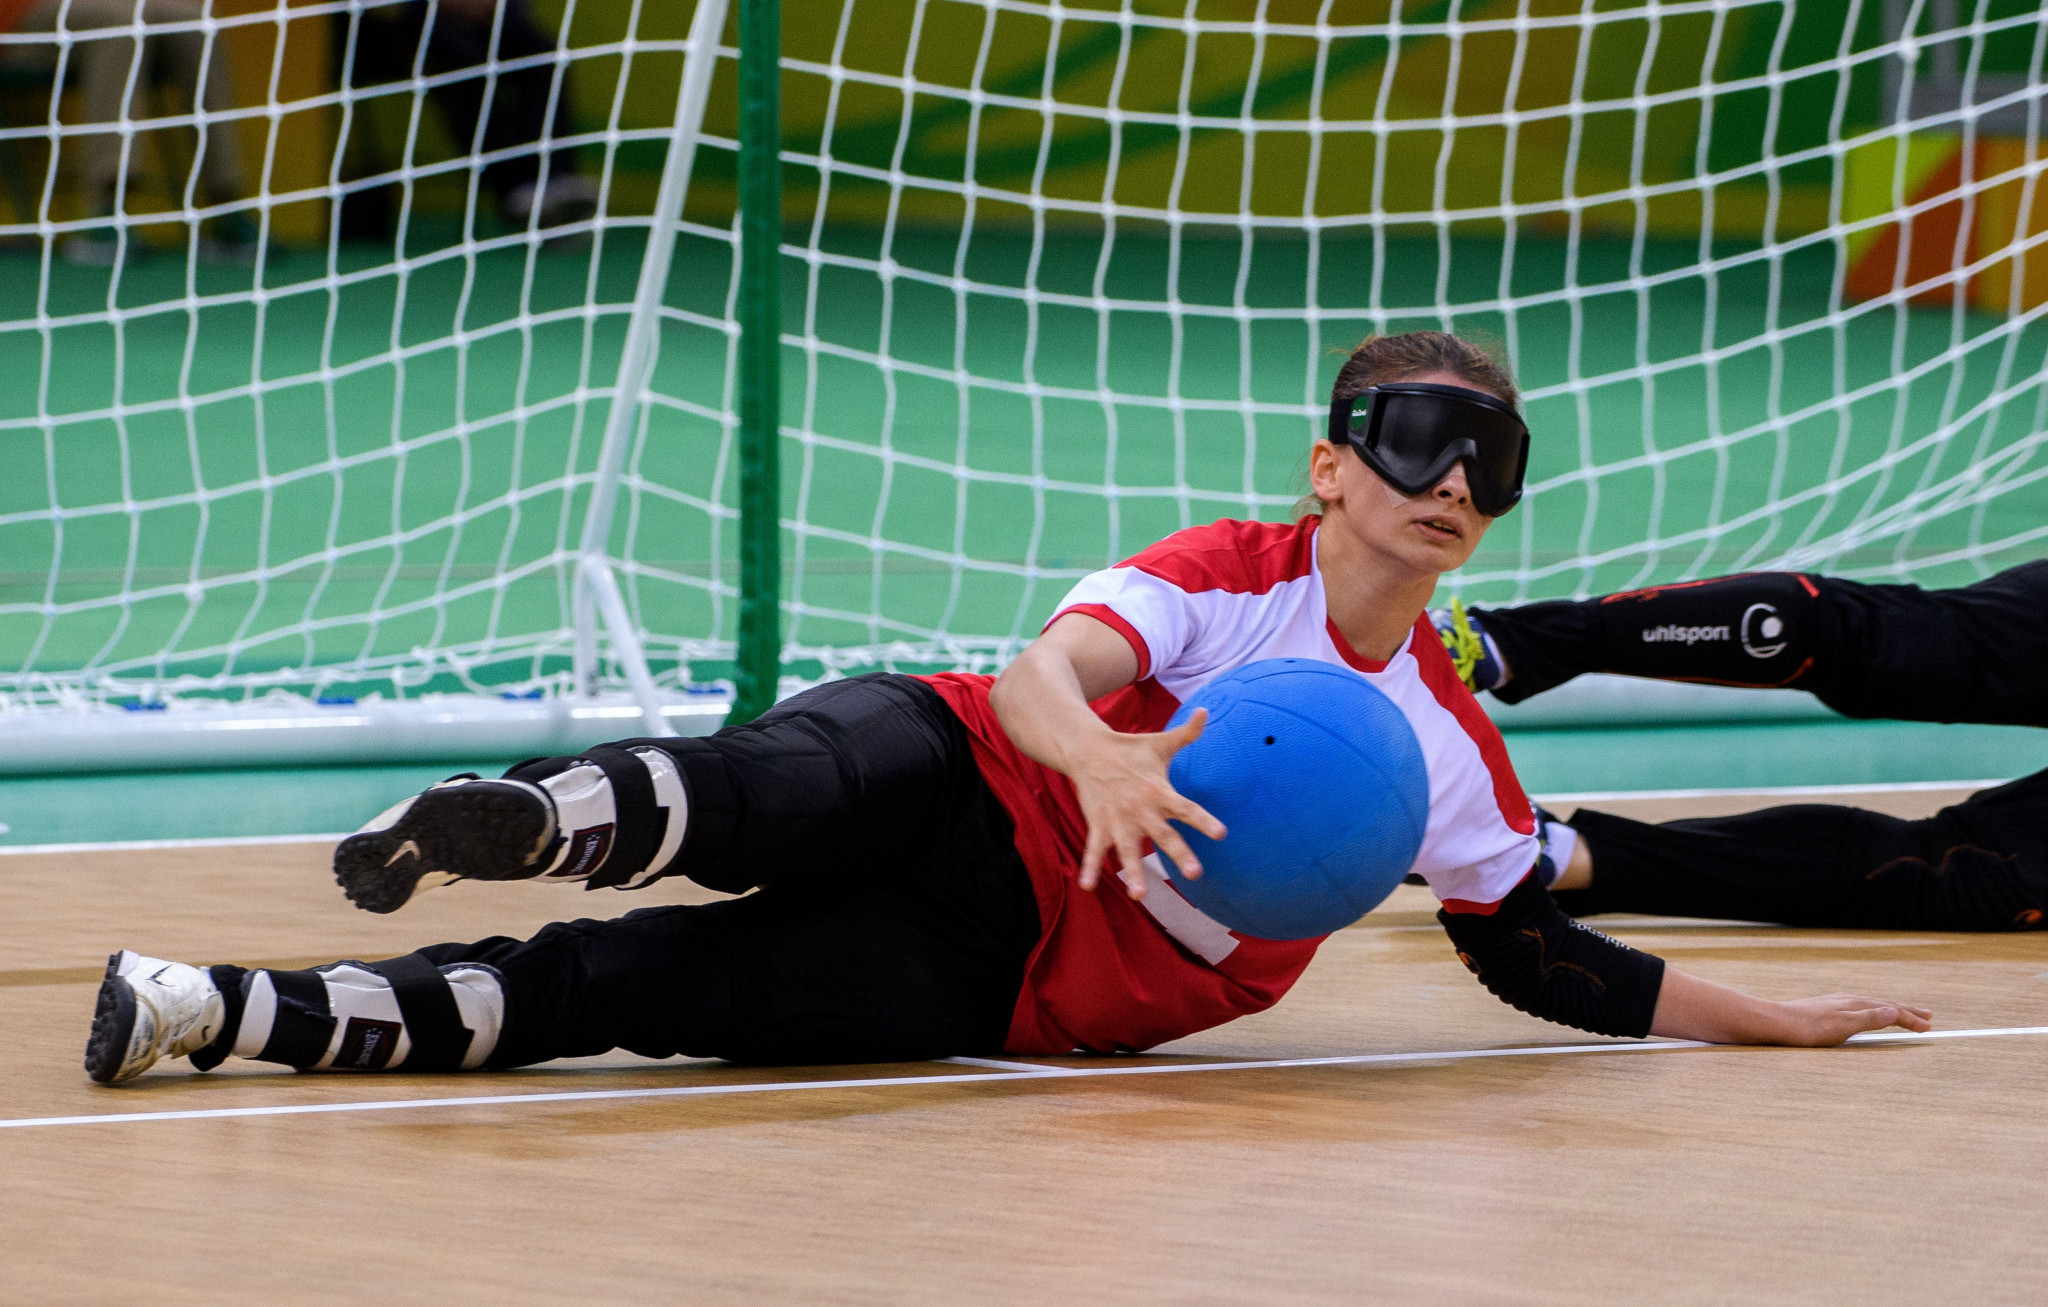 Goalball teams looking to qualify for Tokyo 2020 have a chance at the qualifier event in Fort Wayne ©Getty Images